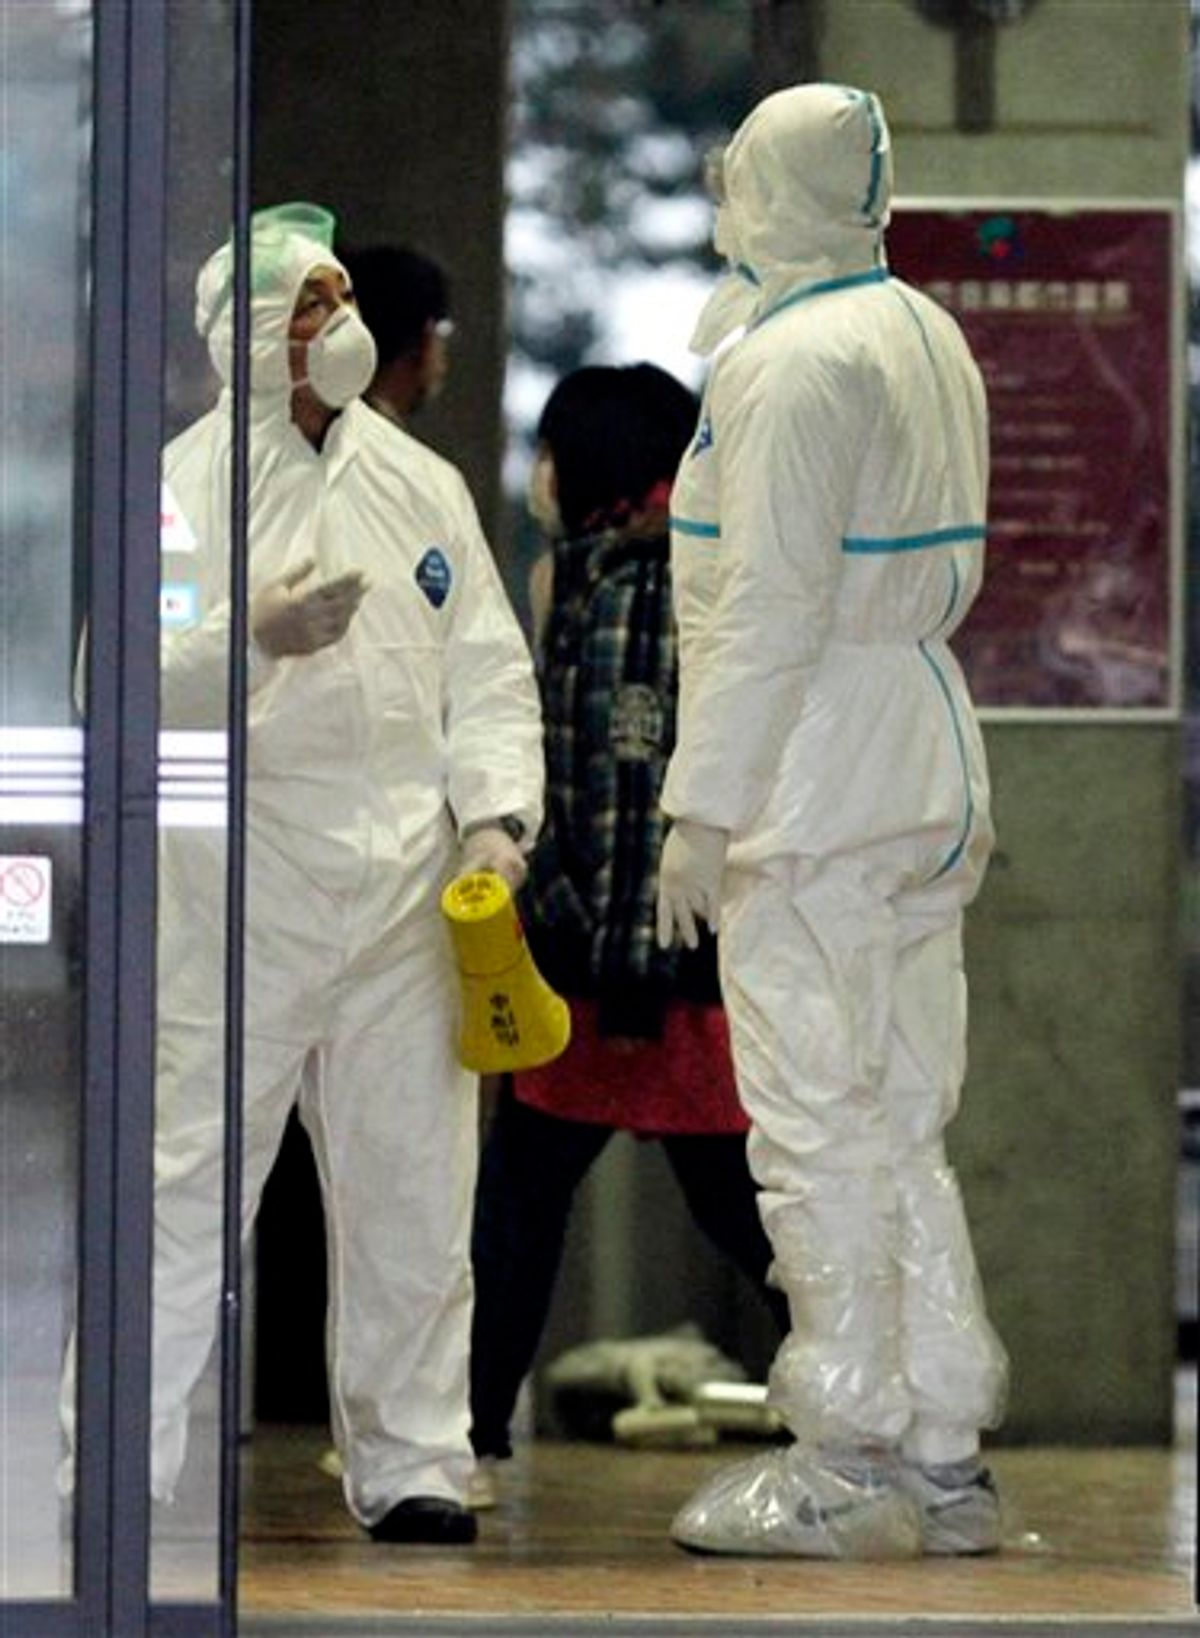 Officials wearing protective suits chat as they usher people through a radiation emergency scanning center in Koriyama, Japan, Tuesday, March 15, 2011 four days after a giant quake and tsunami struck the country's northeastern coast. (AP Photo/Mark Baker) (AP)